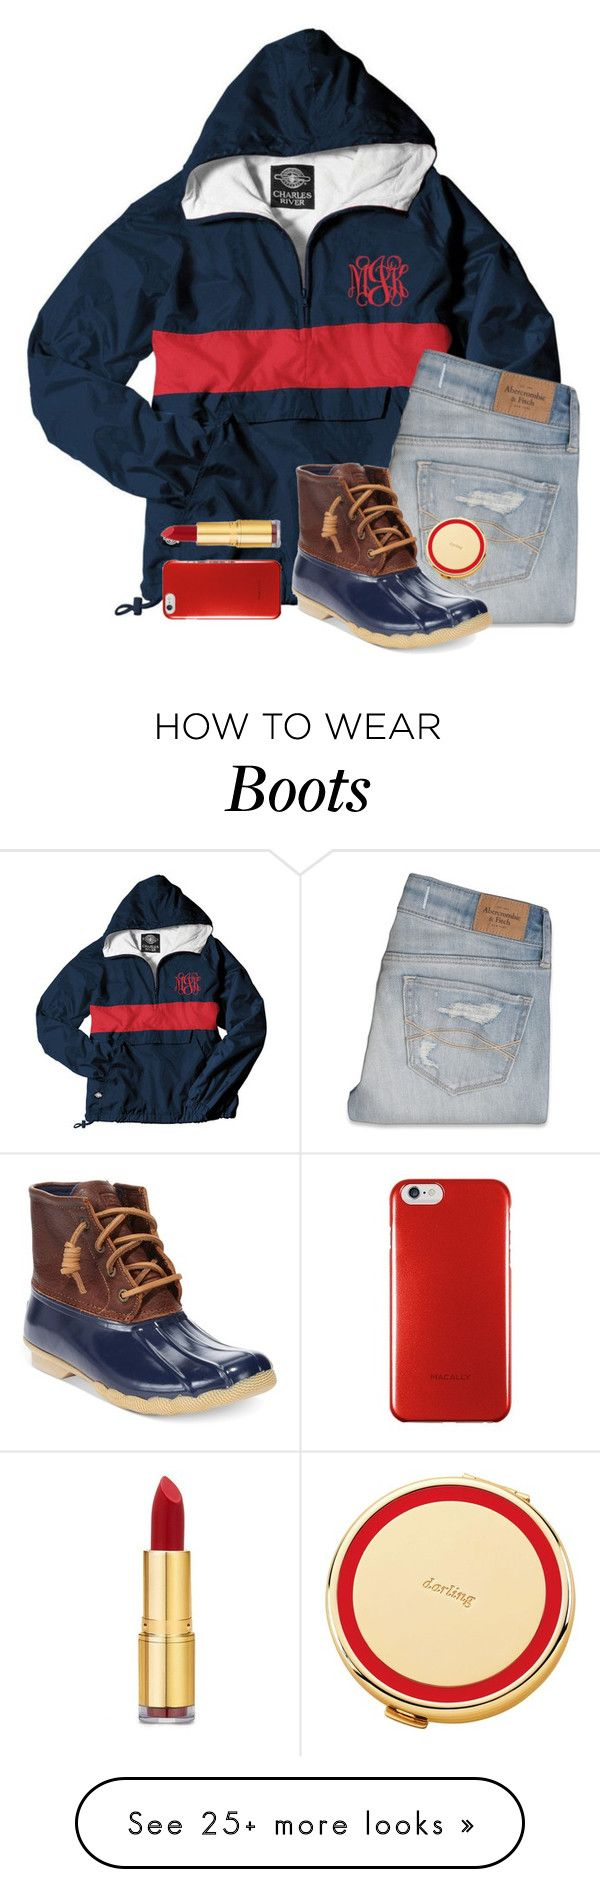 """""""D is for duck boots (and dogs!!)"""" by chevron-elephants on Polyvore featuring Abercrombie & Fitch, Sperry Top-Sider, Isaac Mizrahi, Kate Spade and plus size clothing"""